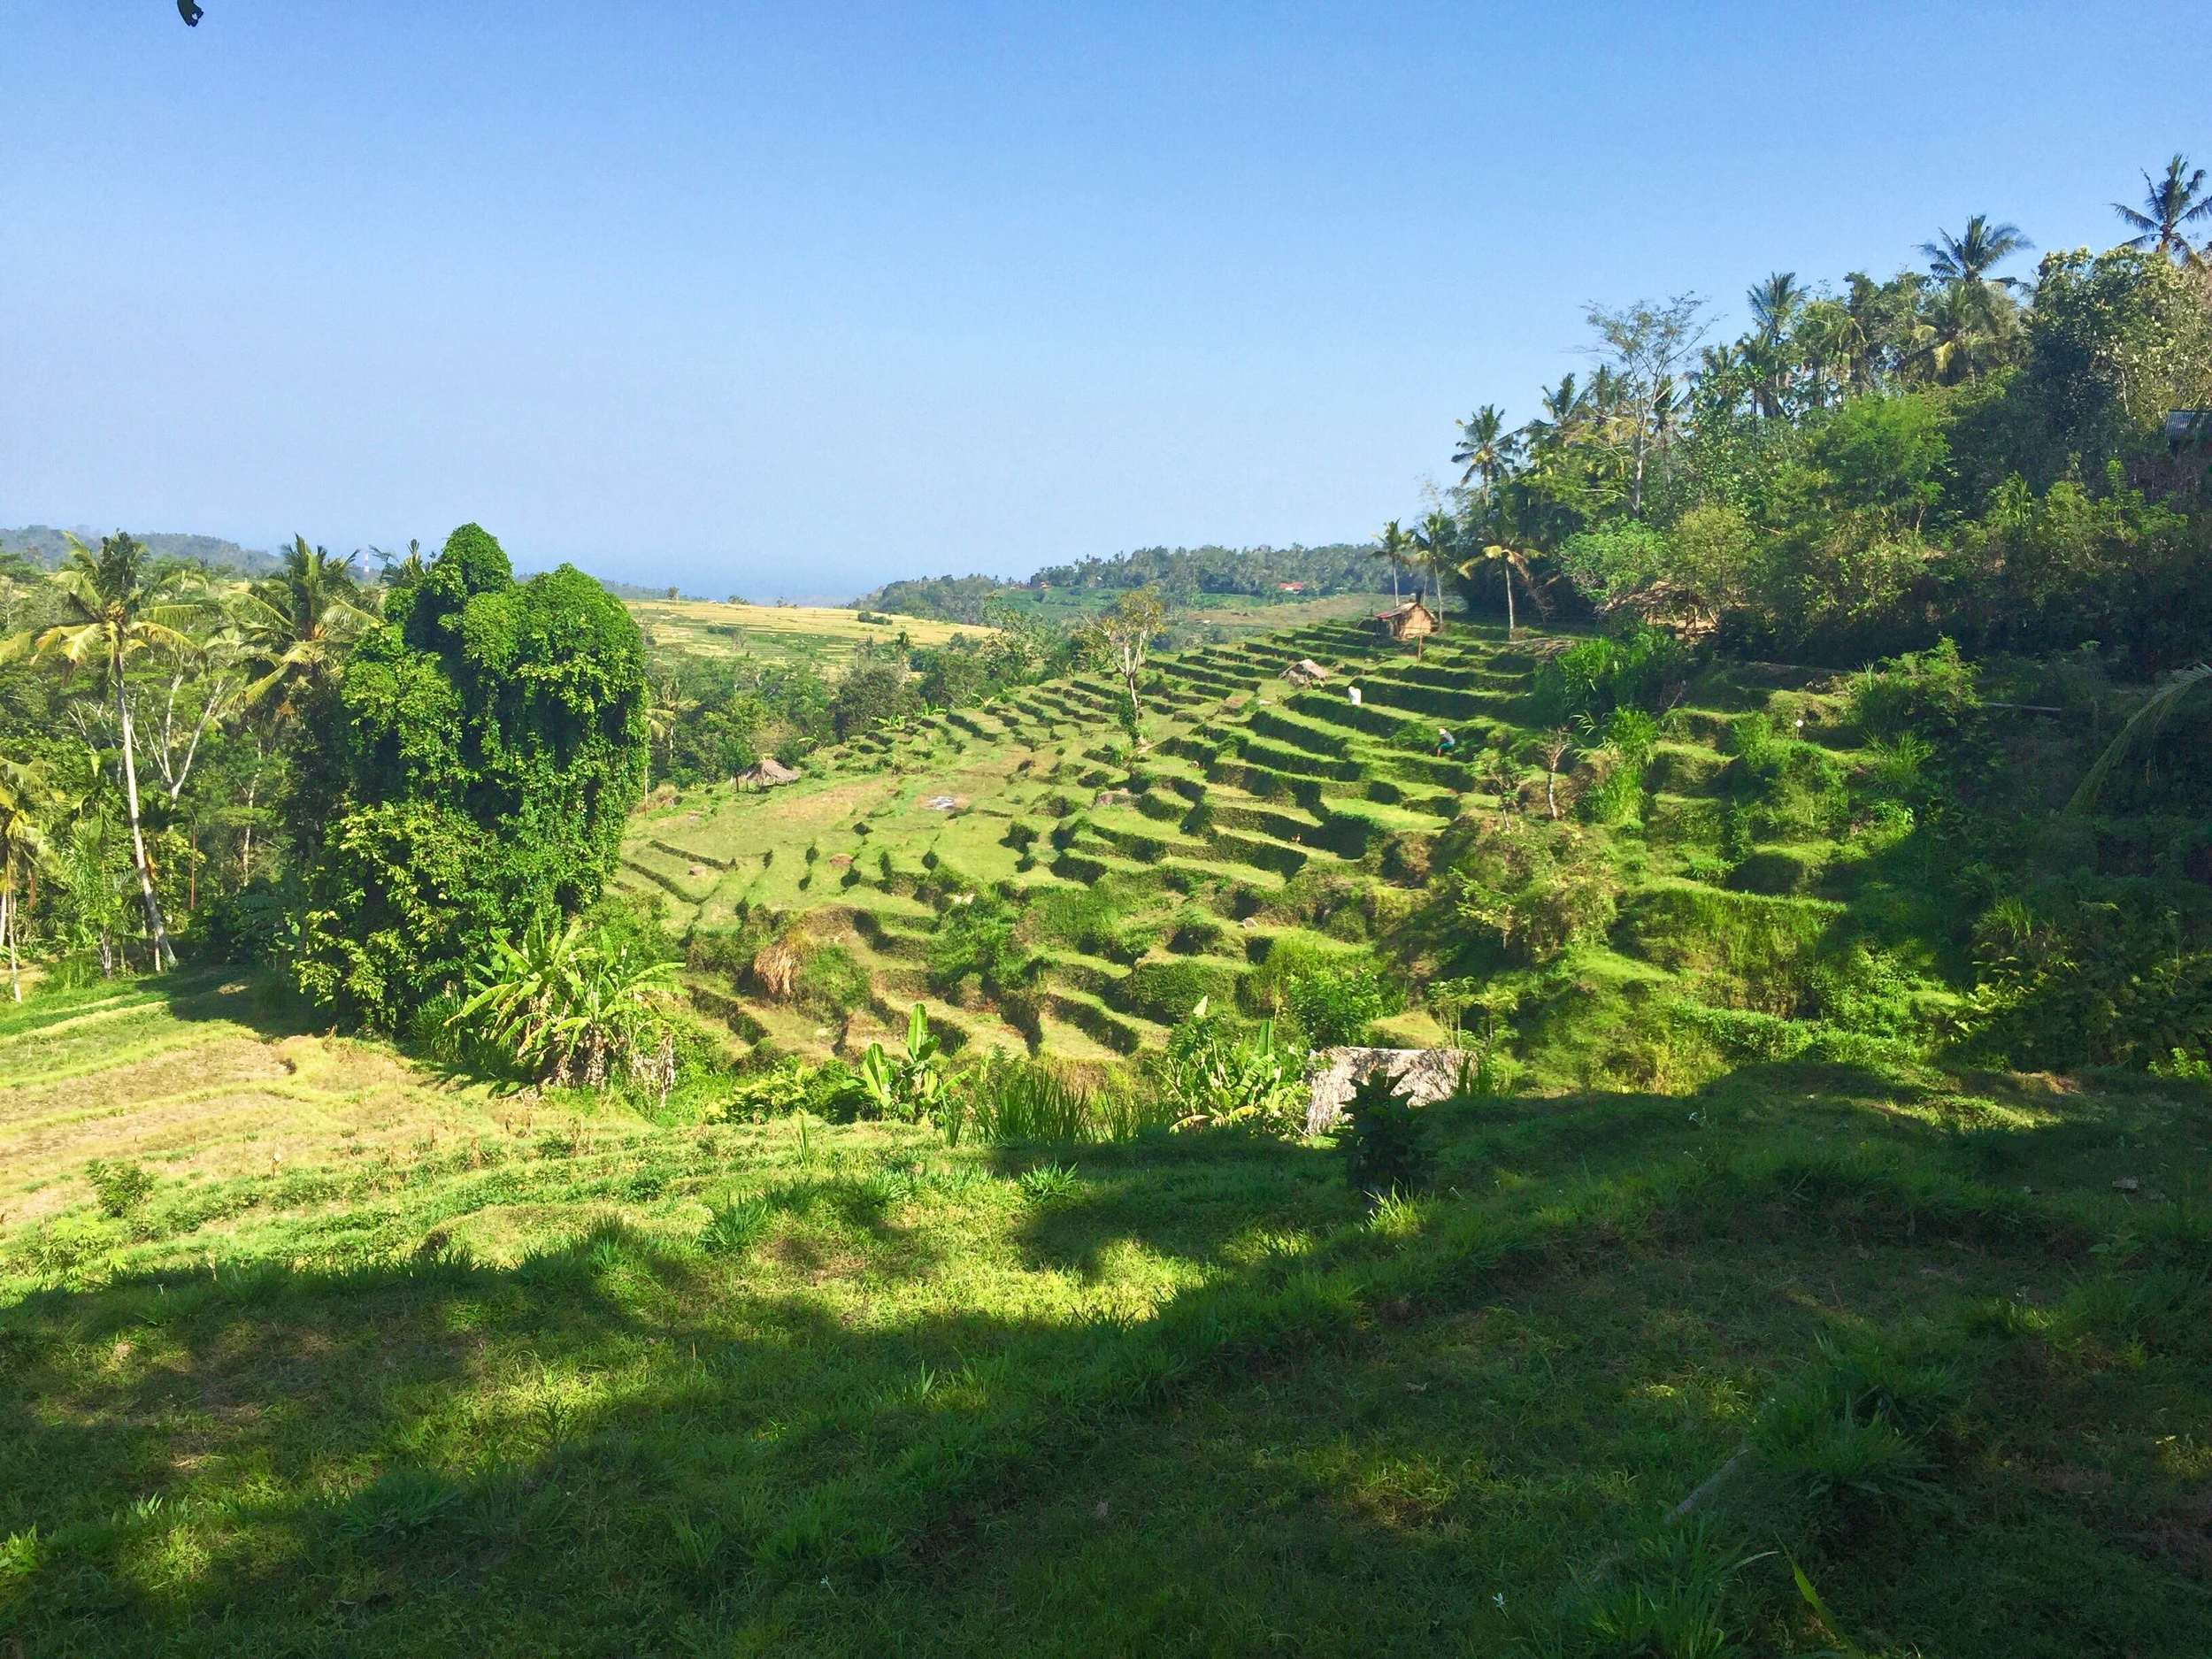 That unforgettable moment you reach the top of the mountain, turn a corner, and realize you're in Bali. (c) 2015 Gail Jessen, A Series of Adventures